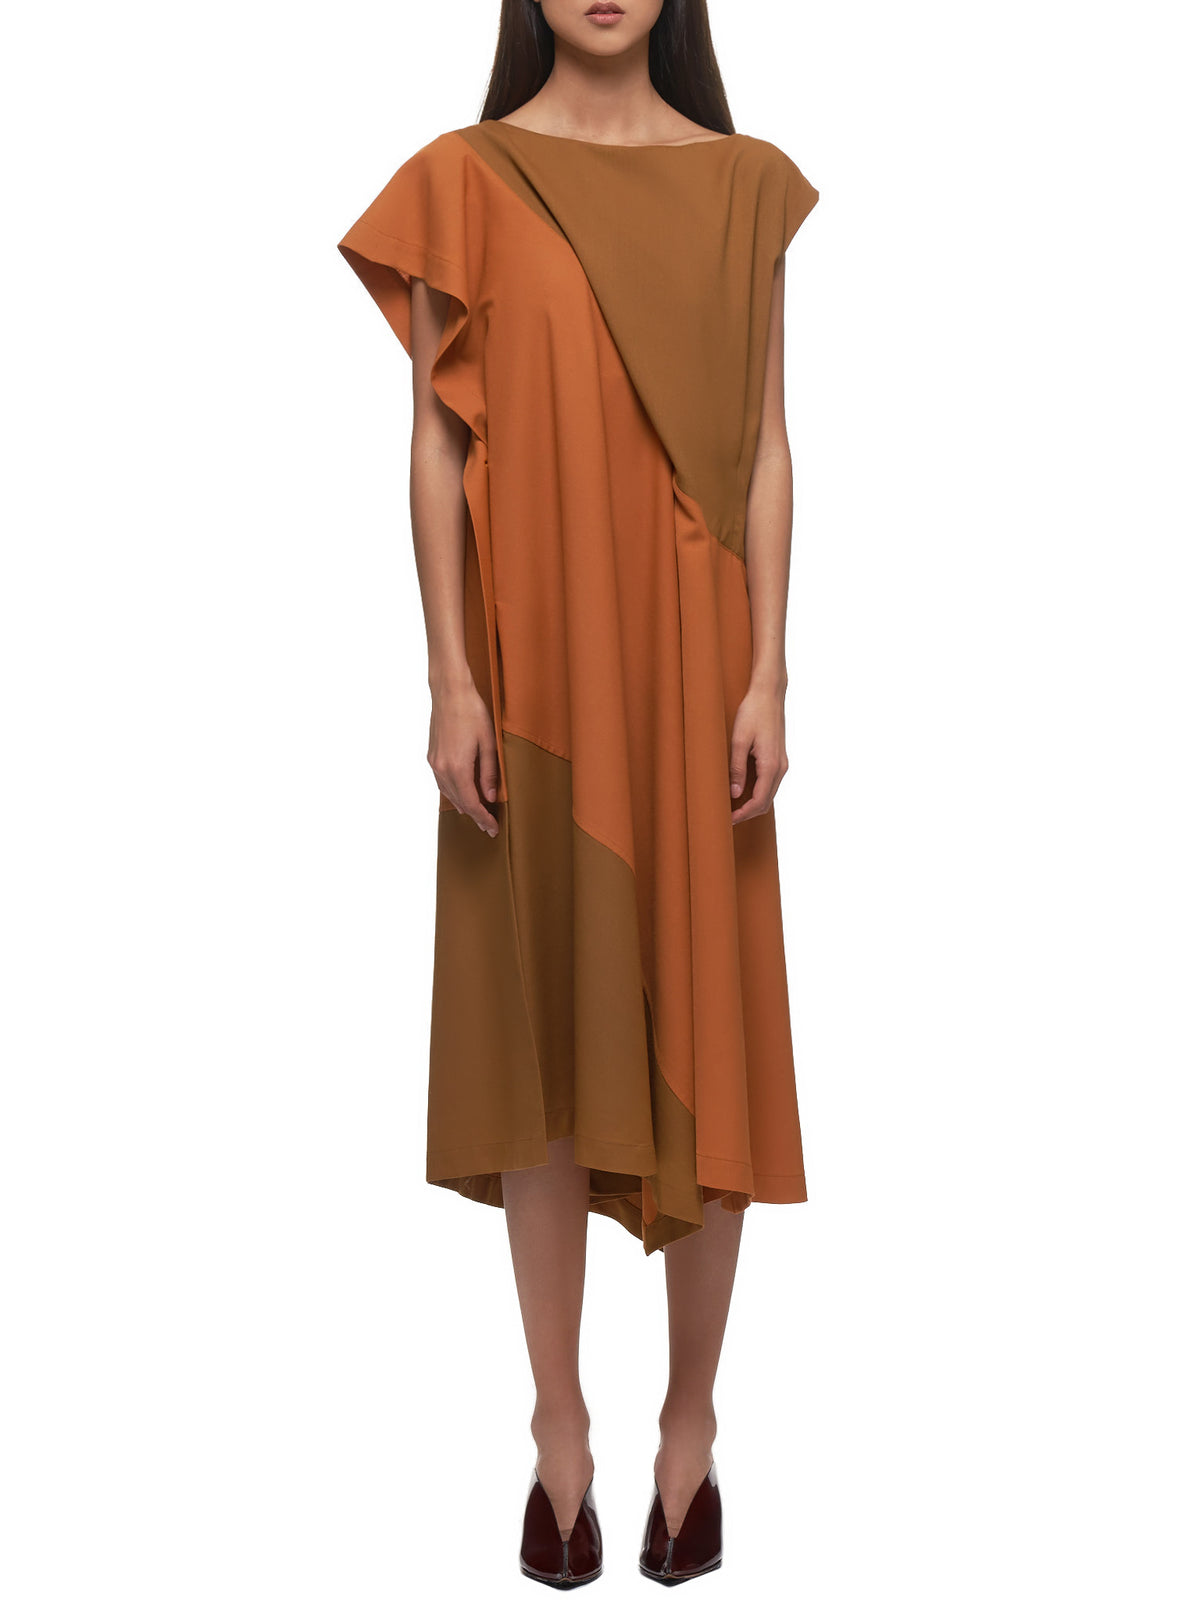 Ruffled Tunic Dress (IL06FH313-MUSTARD-ORANGE)